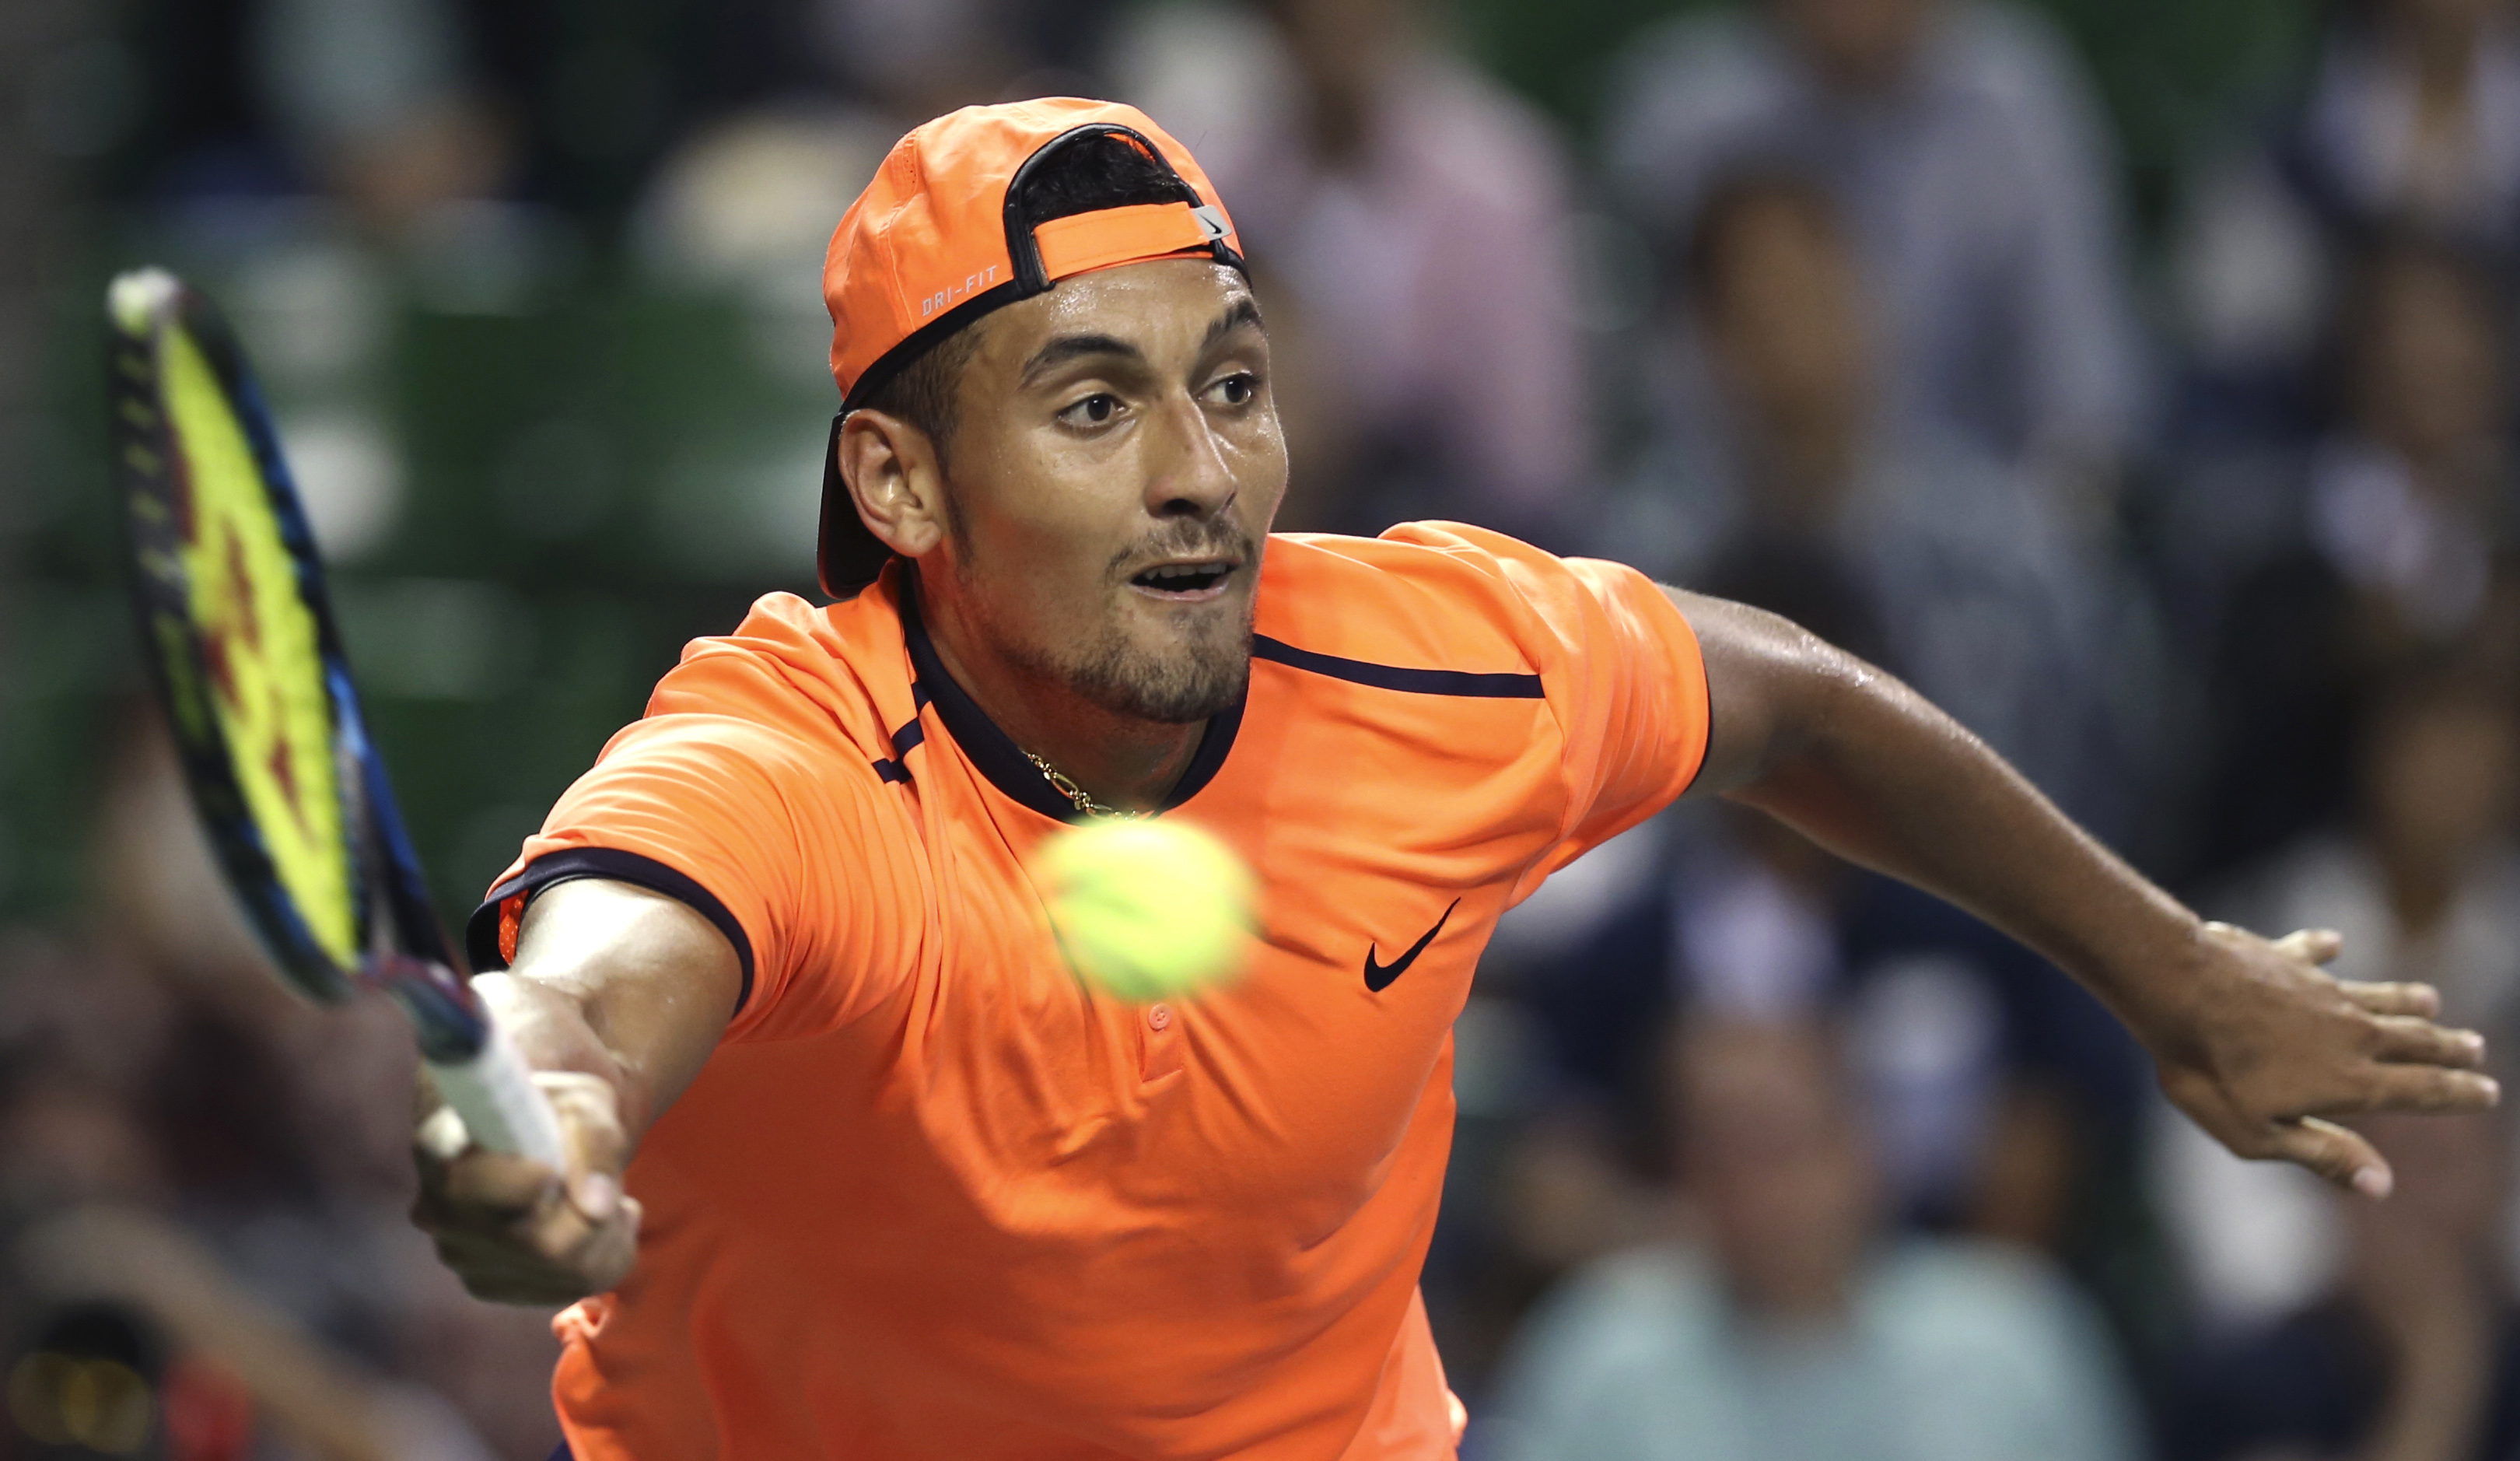 FILE - In this Saturday, Oct. 8, 2016, file photo, Australia's Nick Kyrgios returns a shot to Gael Monfils of France during the semifinal match of Japan Open tennis championships in Tokyo. Major champions Juan Martin del Potro, Venus Williams and Garbine